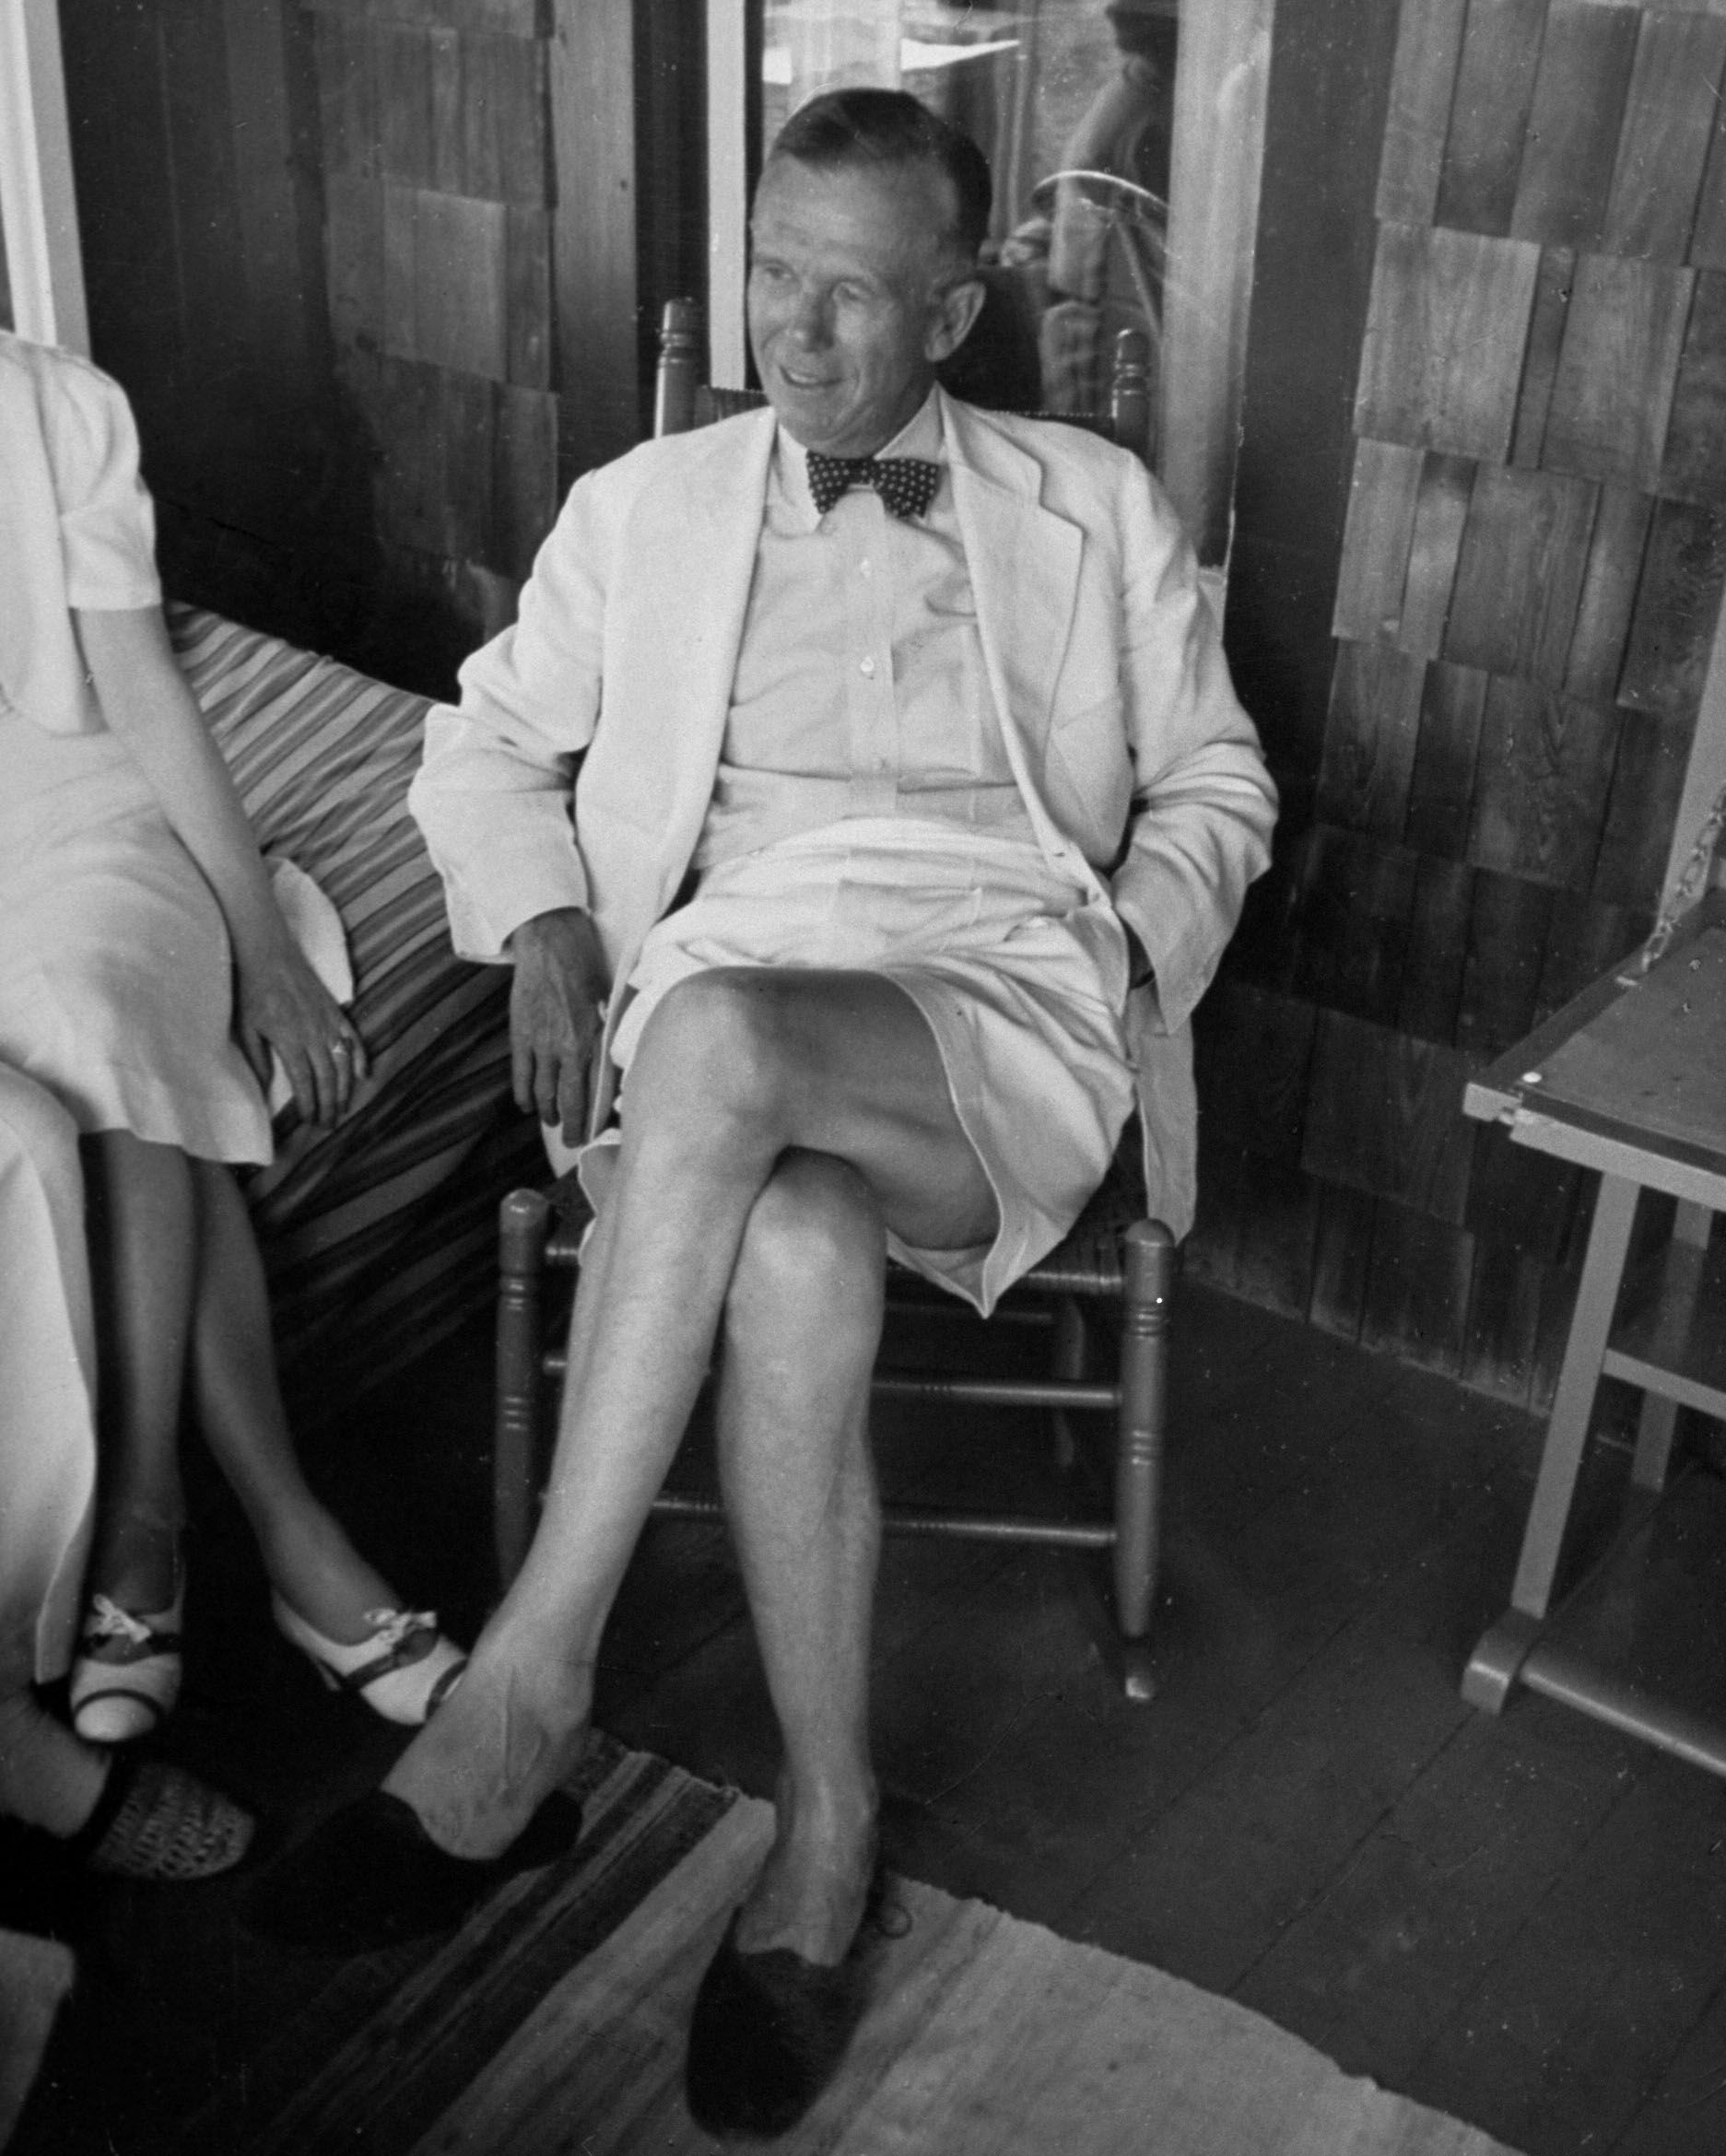 General george c marshall quotes - Dare To Wear The History Of Bermuda Shorts In Photos